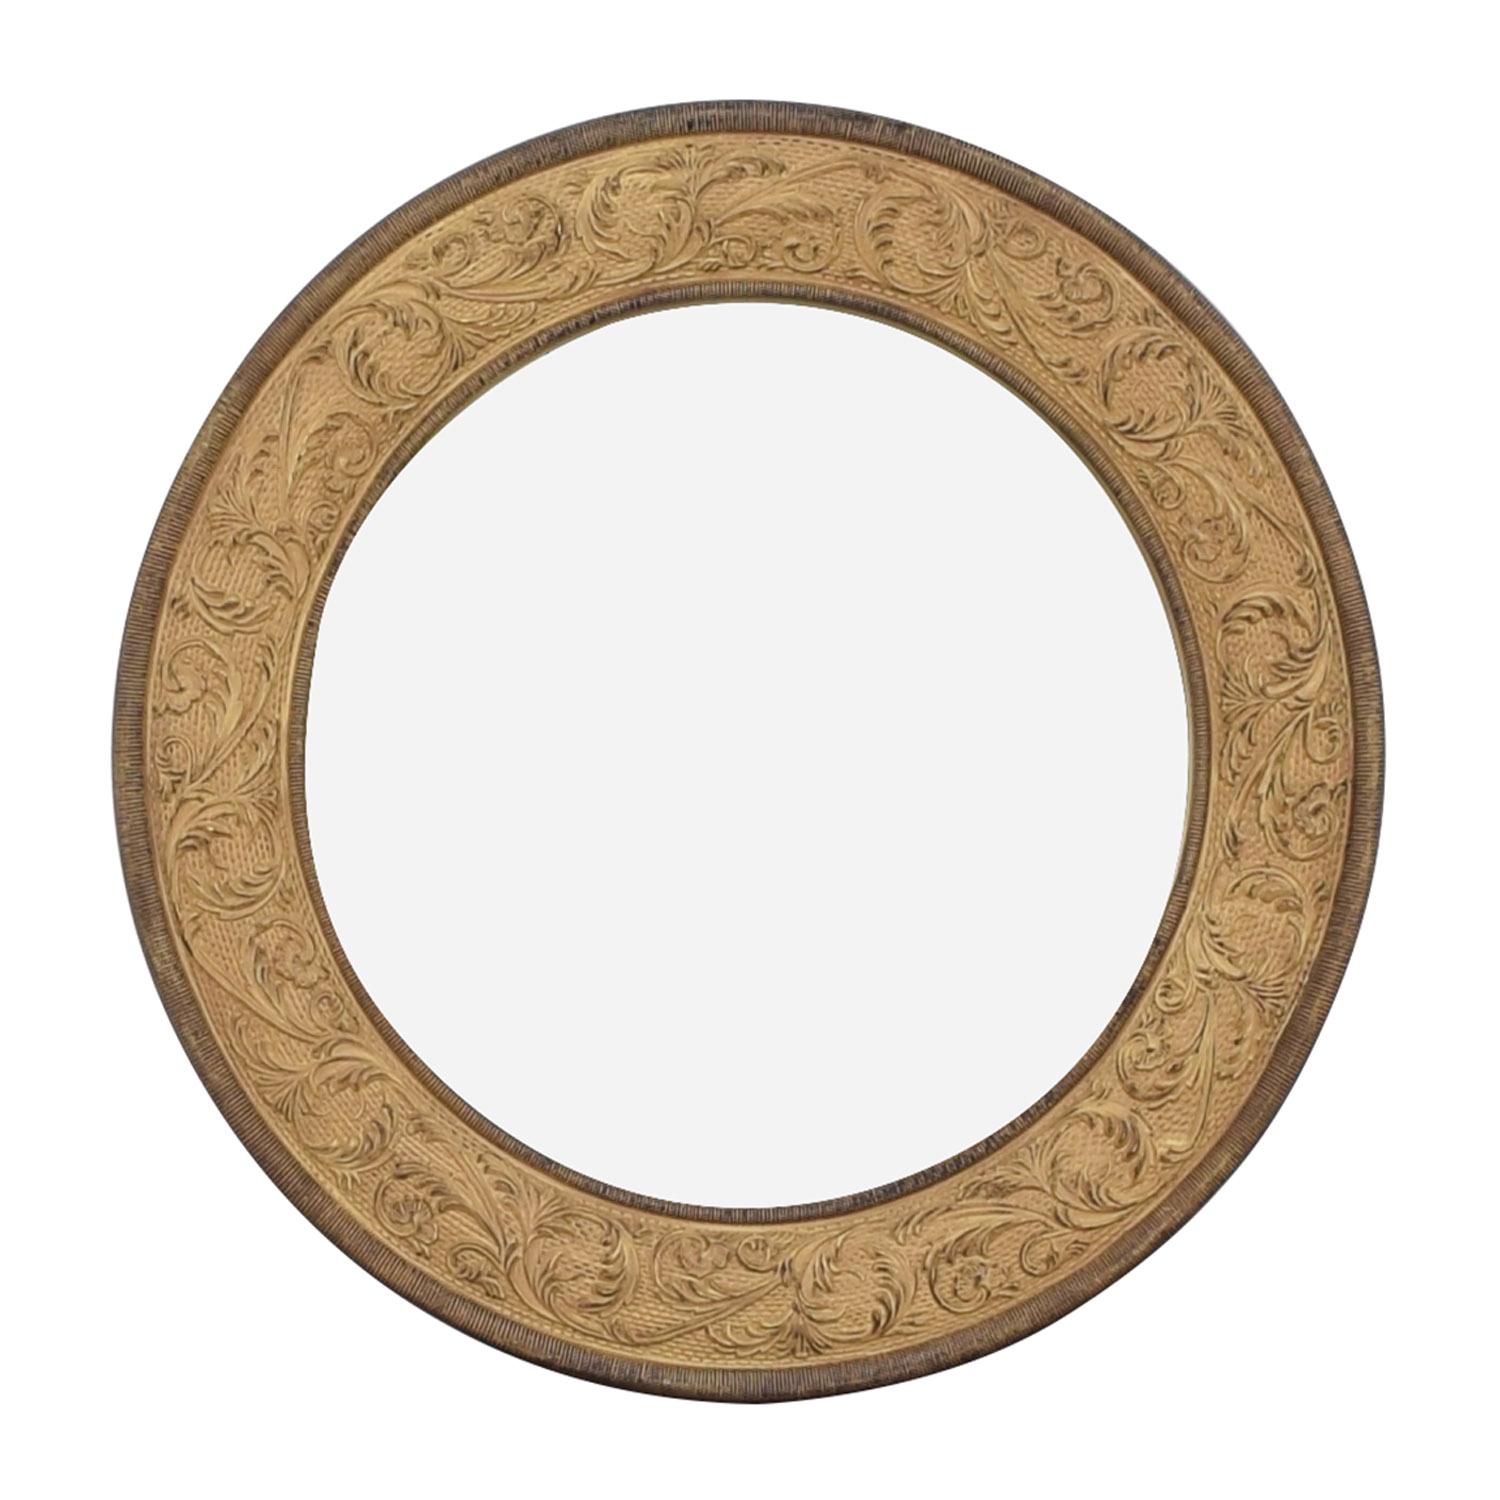 shop Round Framed Accent Mirror One Kings Lane Mirrors